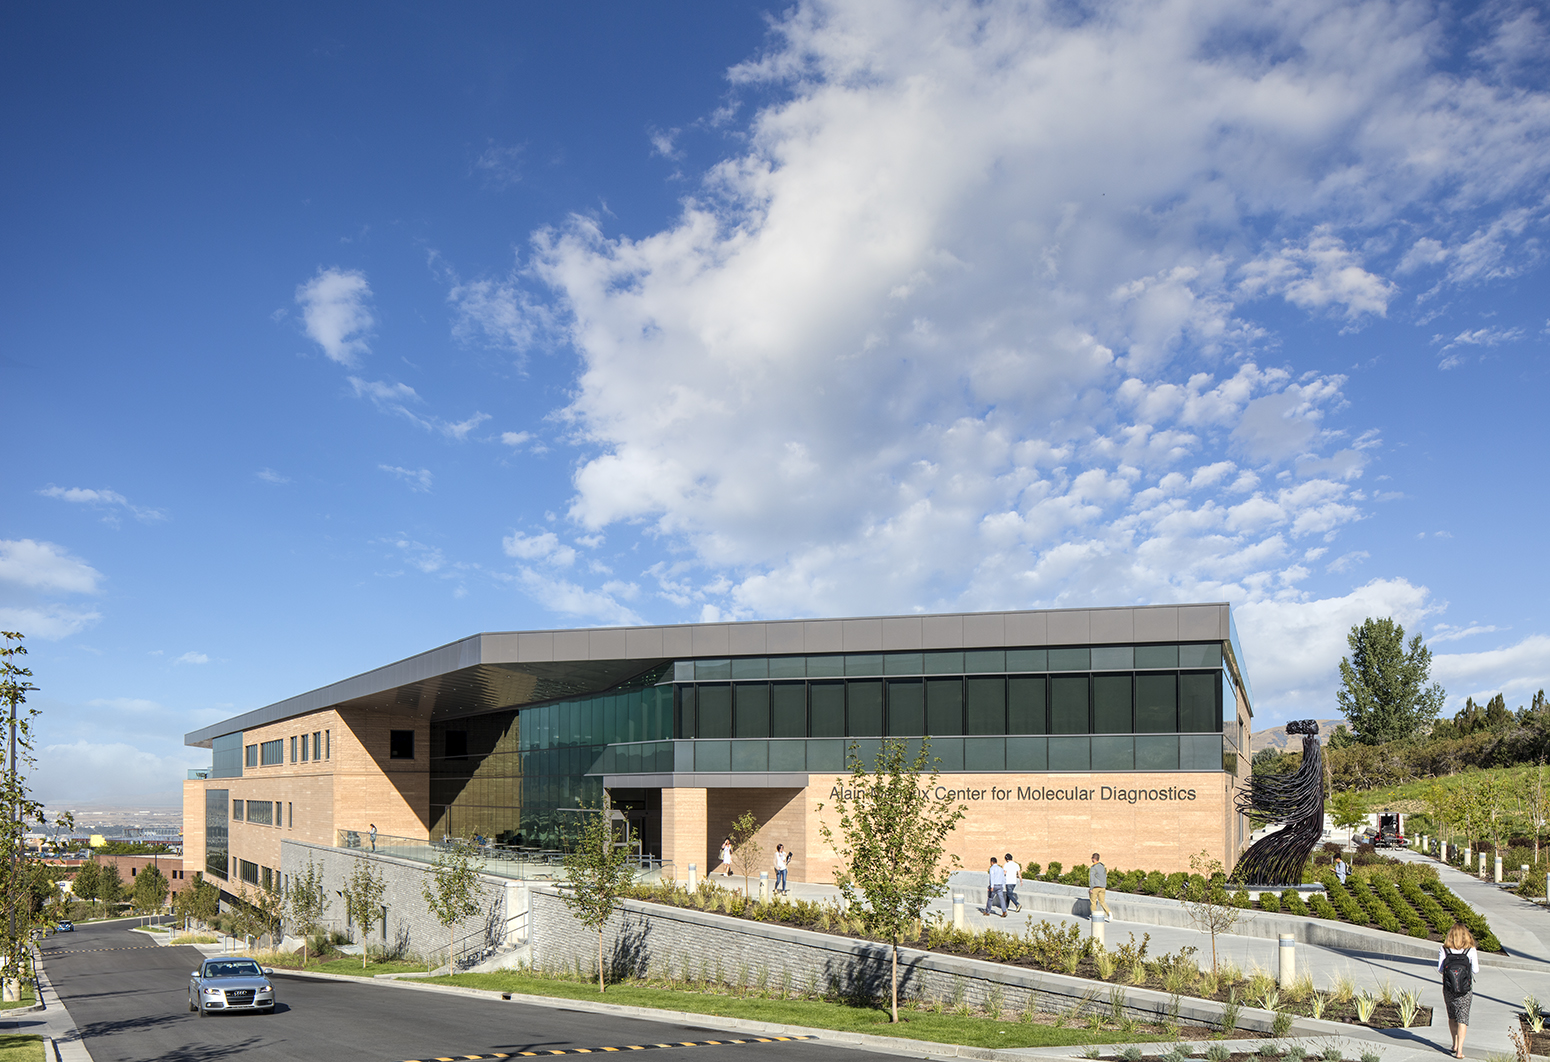 Exterior photograph of a modern bio tech building under blue skies with big, puffy, clouds over head. The building has light brown masonry, large glass windows and people exiting the building.